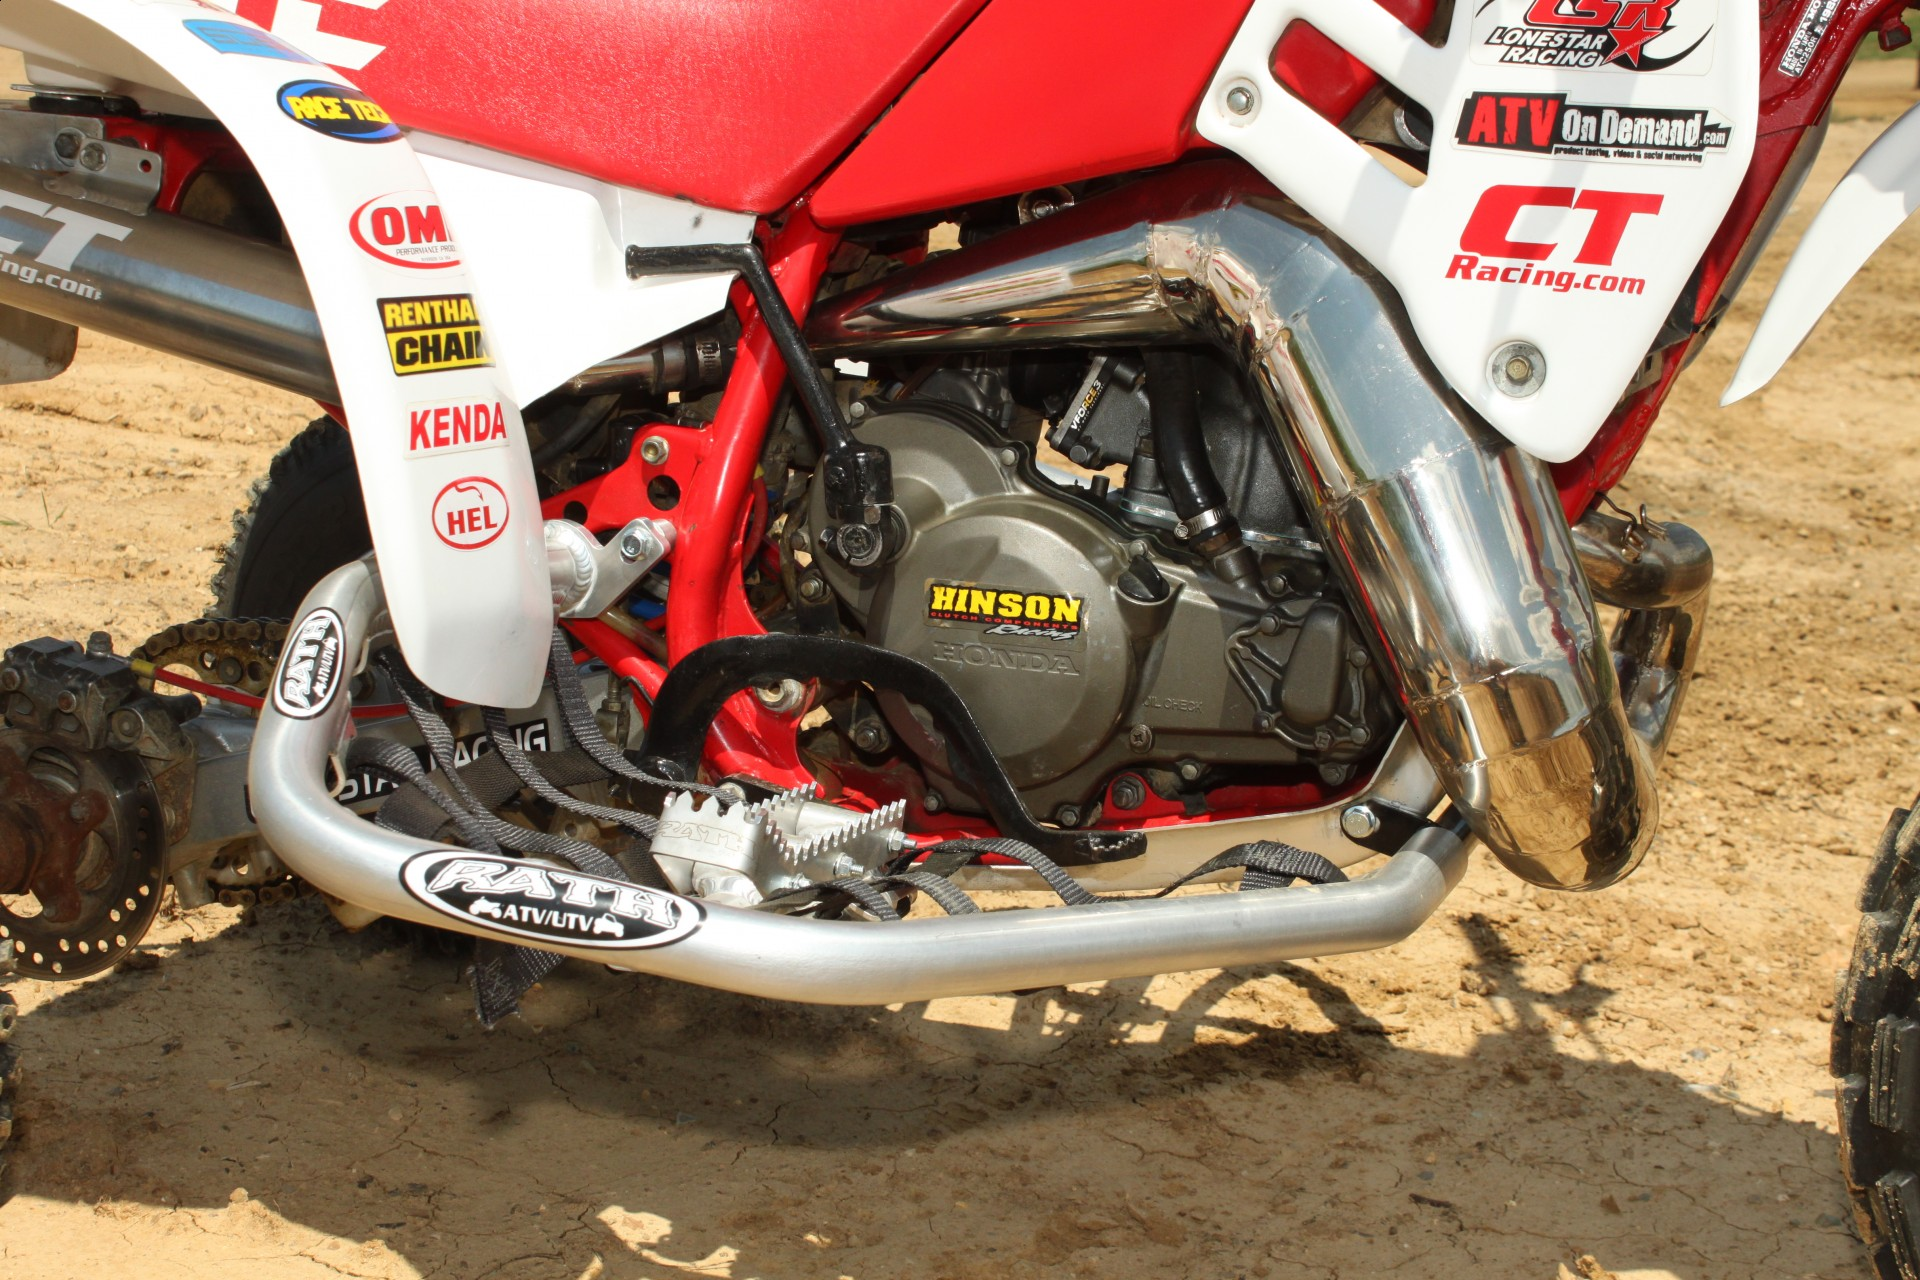 1985 1986 Honda ATC250R Motocross Project, Part 2: WITH VIDEO